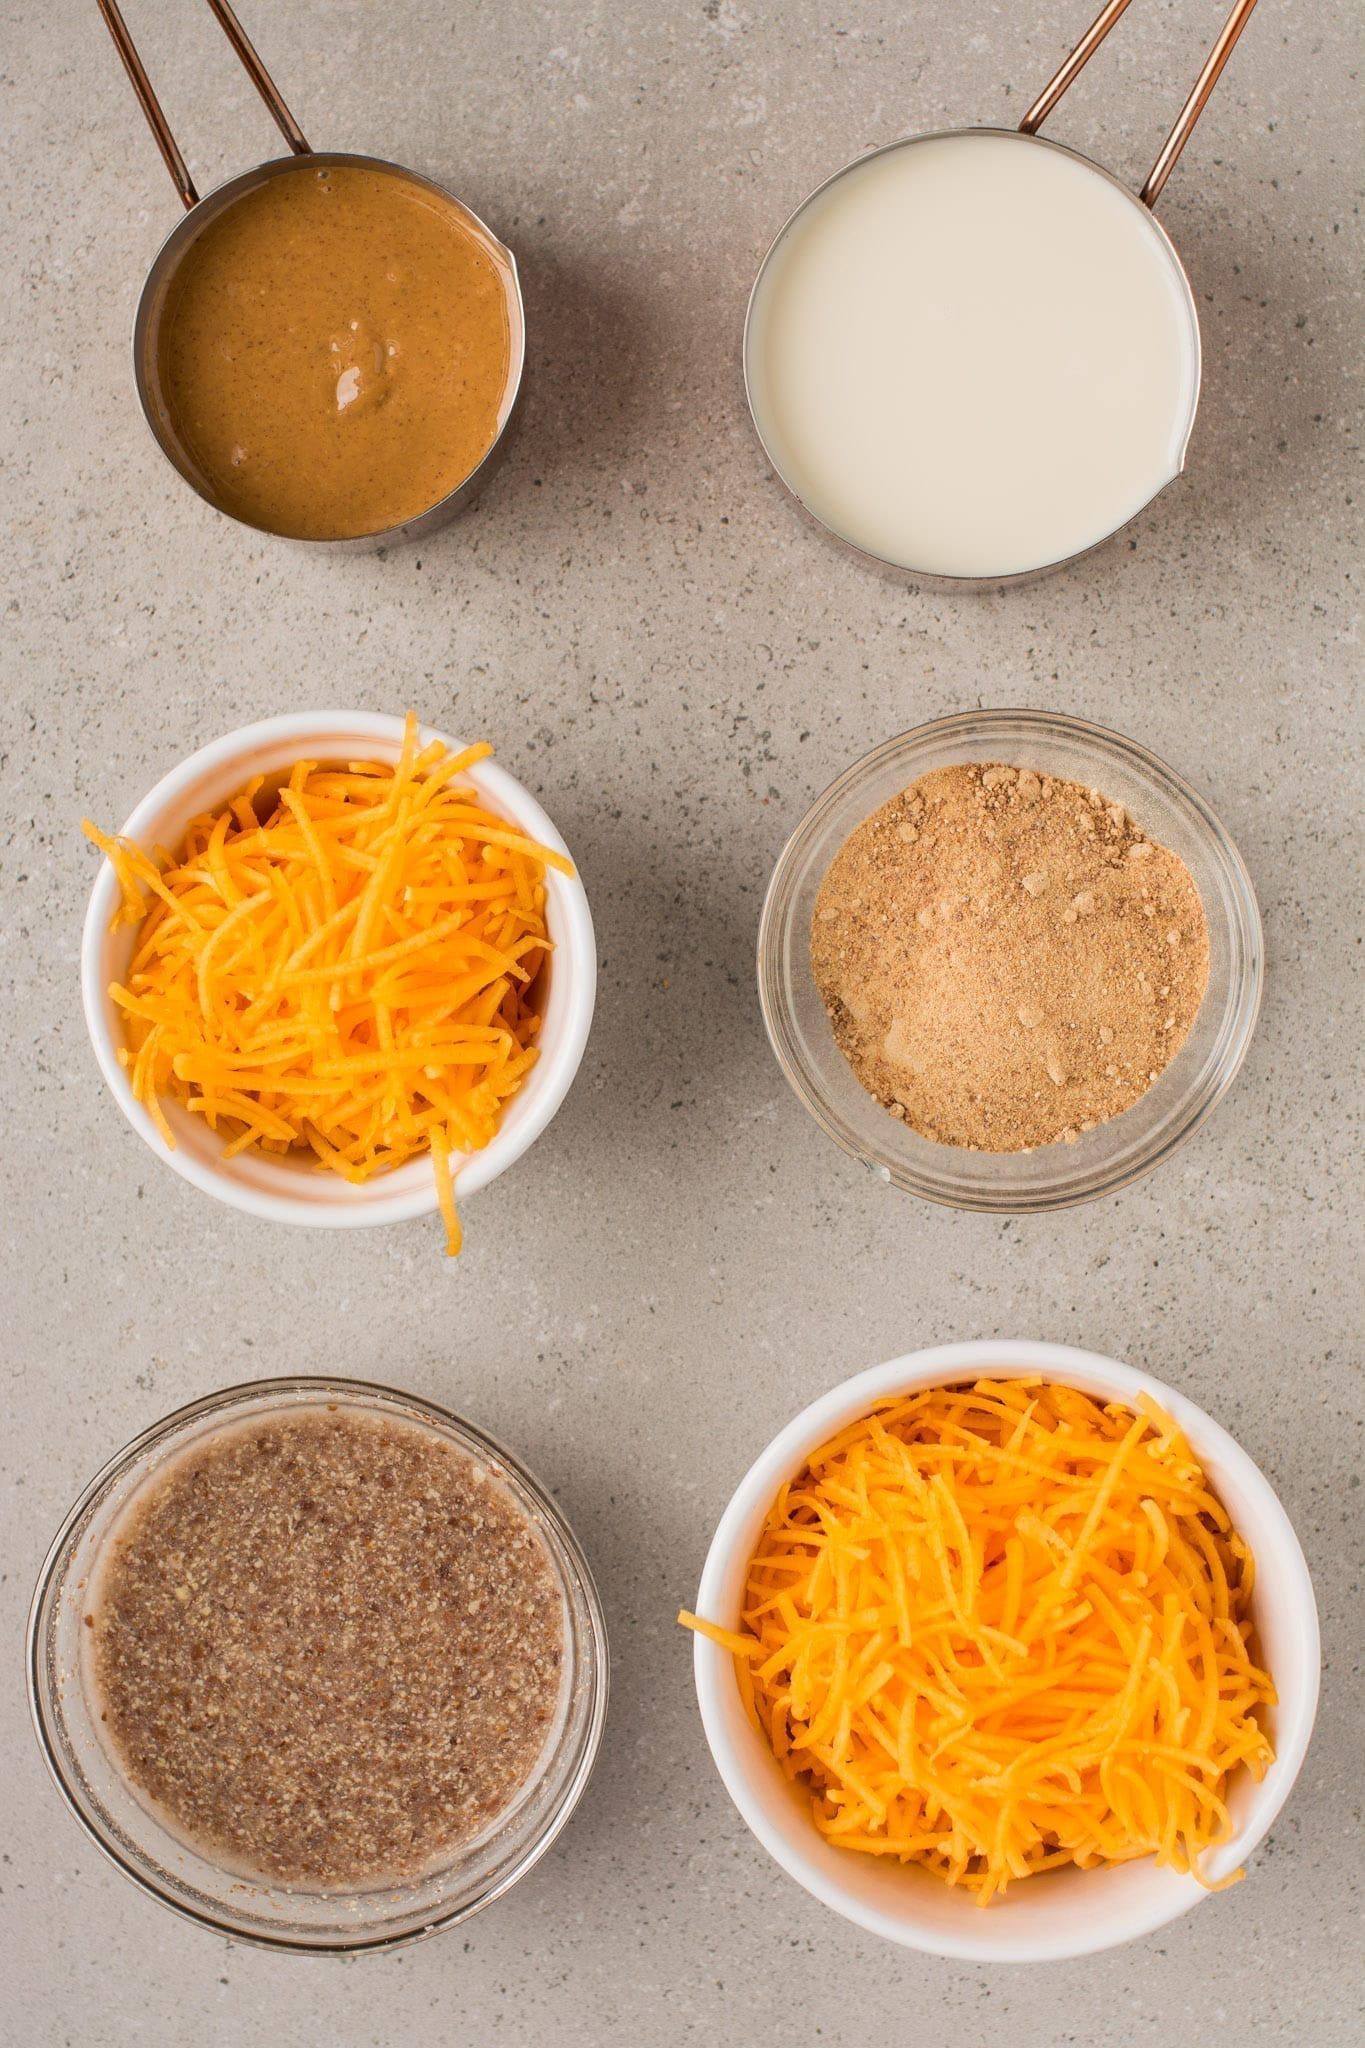 Wet ingredients of gluten free pumpkin bread